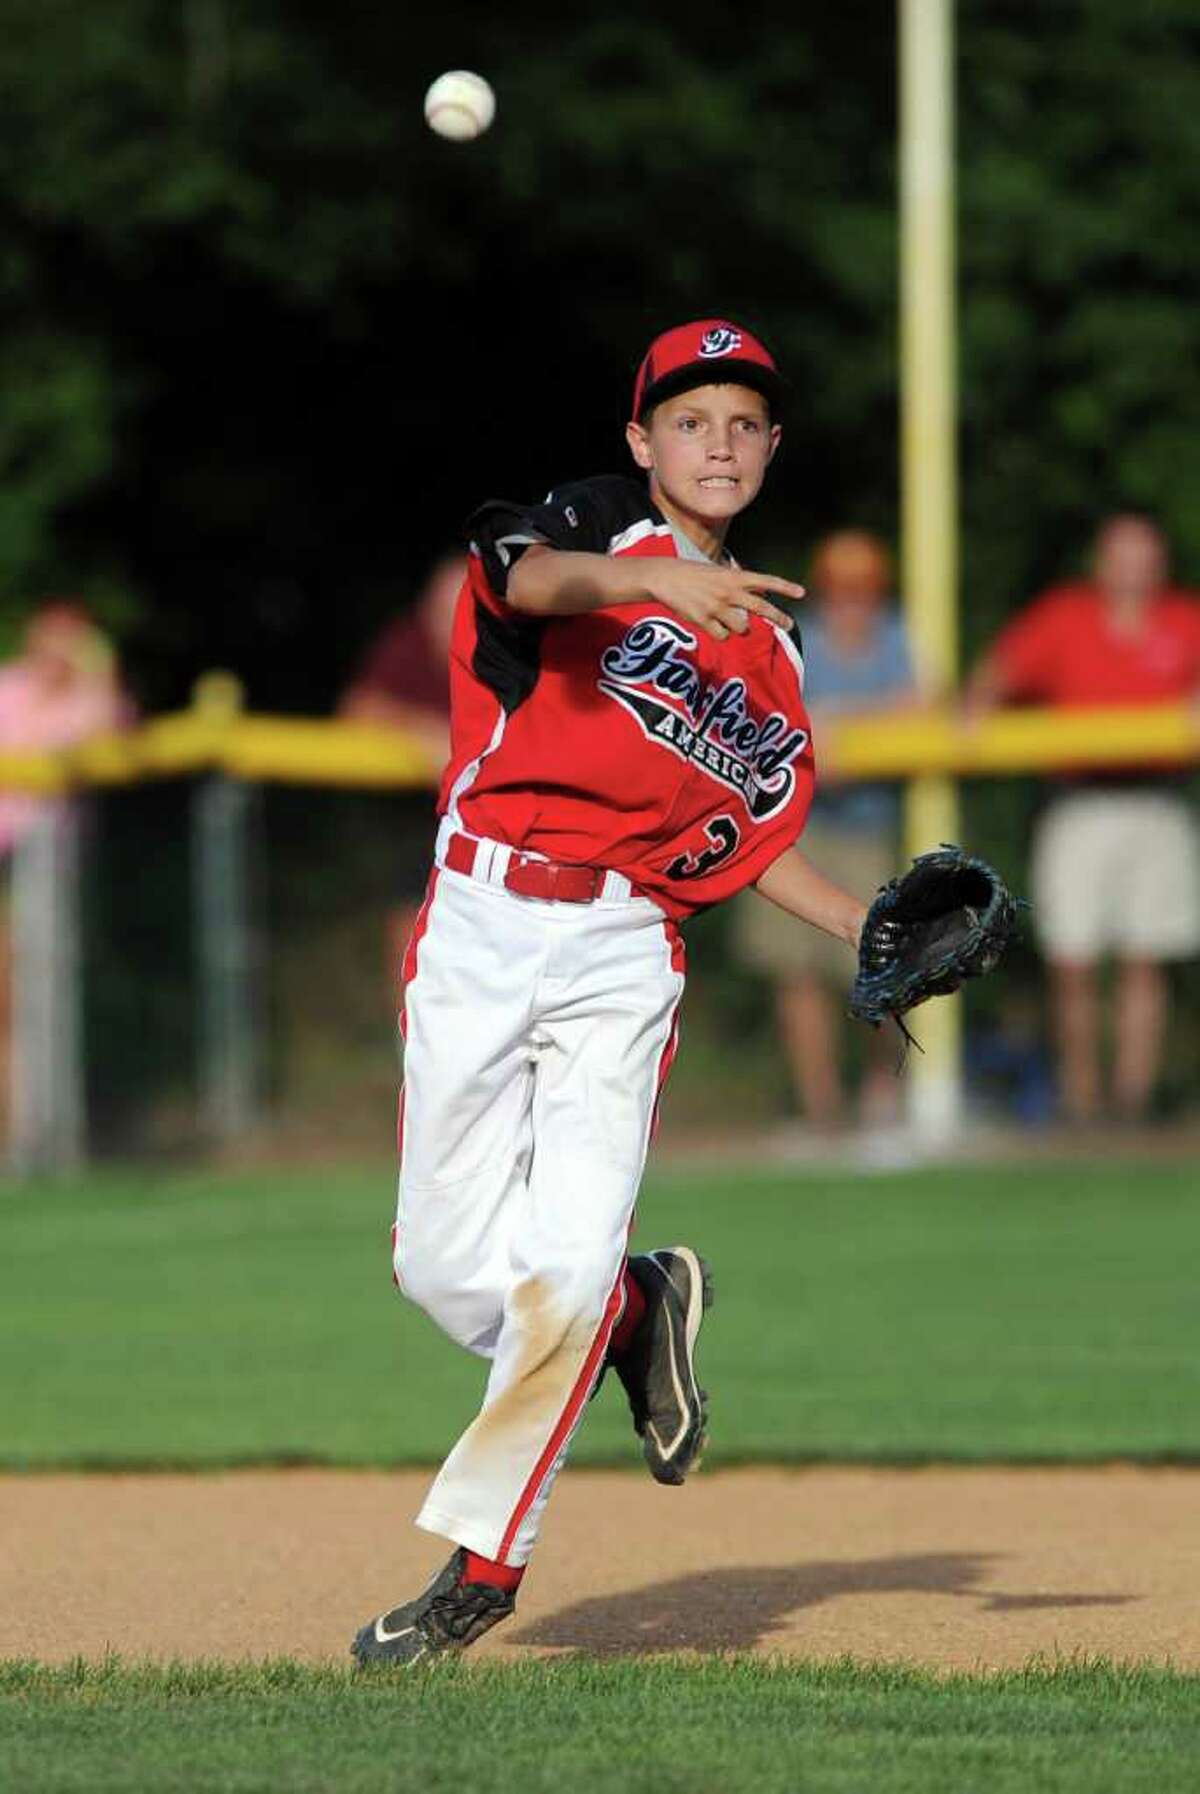 Philip Vlandis throws the ball during Wednesday's Fairfield American Little League Section 1 Championship game against East Haven in Orange on July 27, 3011.